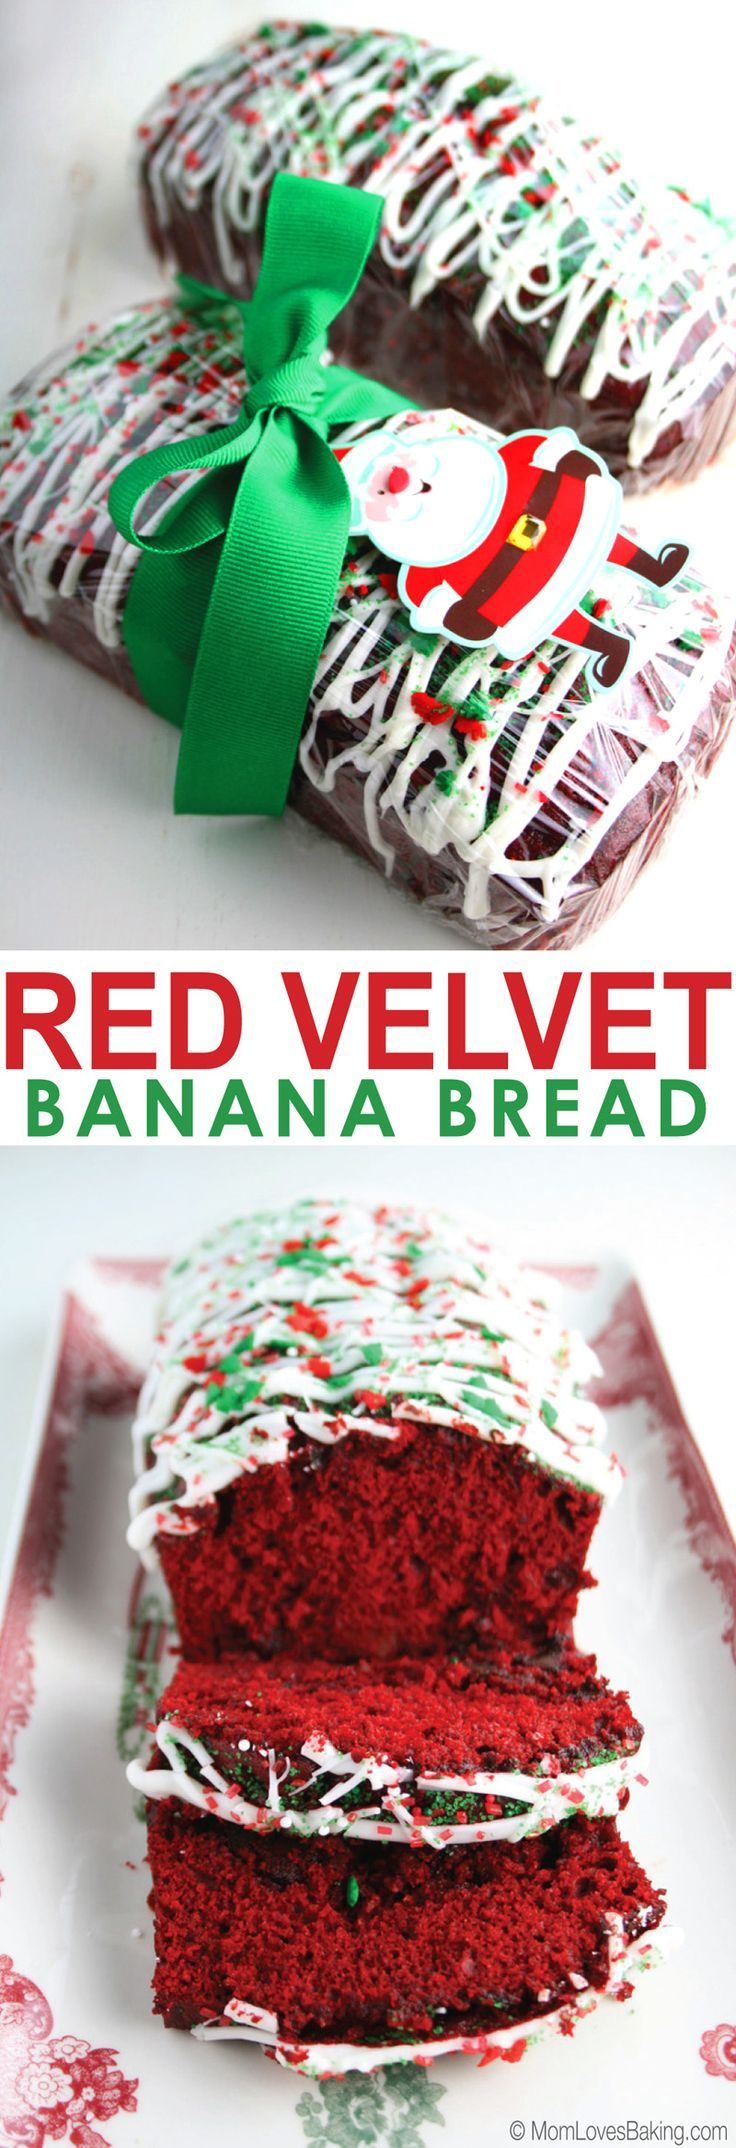 It's like banana bread & red velvet cake all at the same time. Plus, it's drizzled with white chocolate and sprinkled with Christmas cheer!